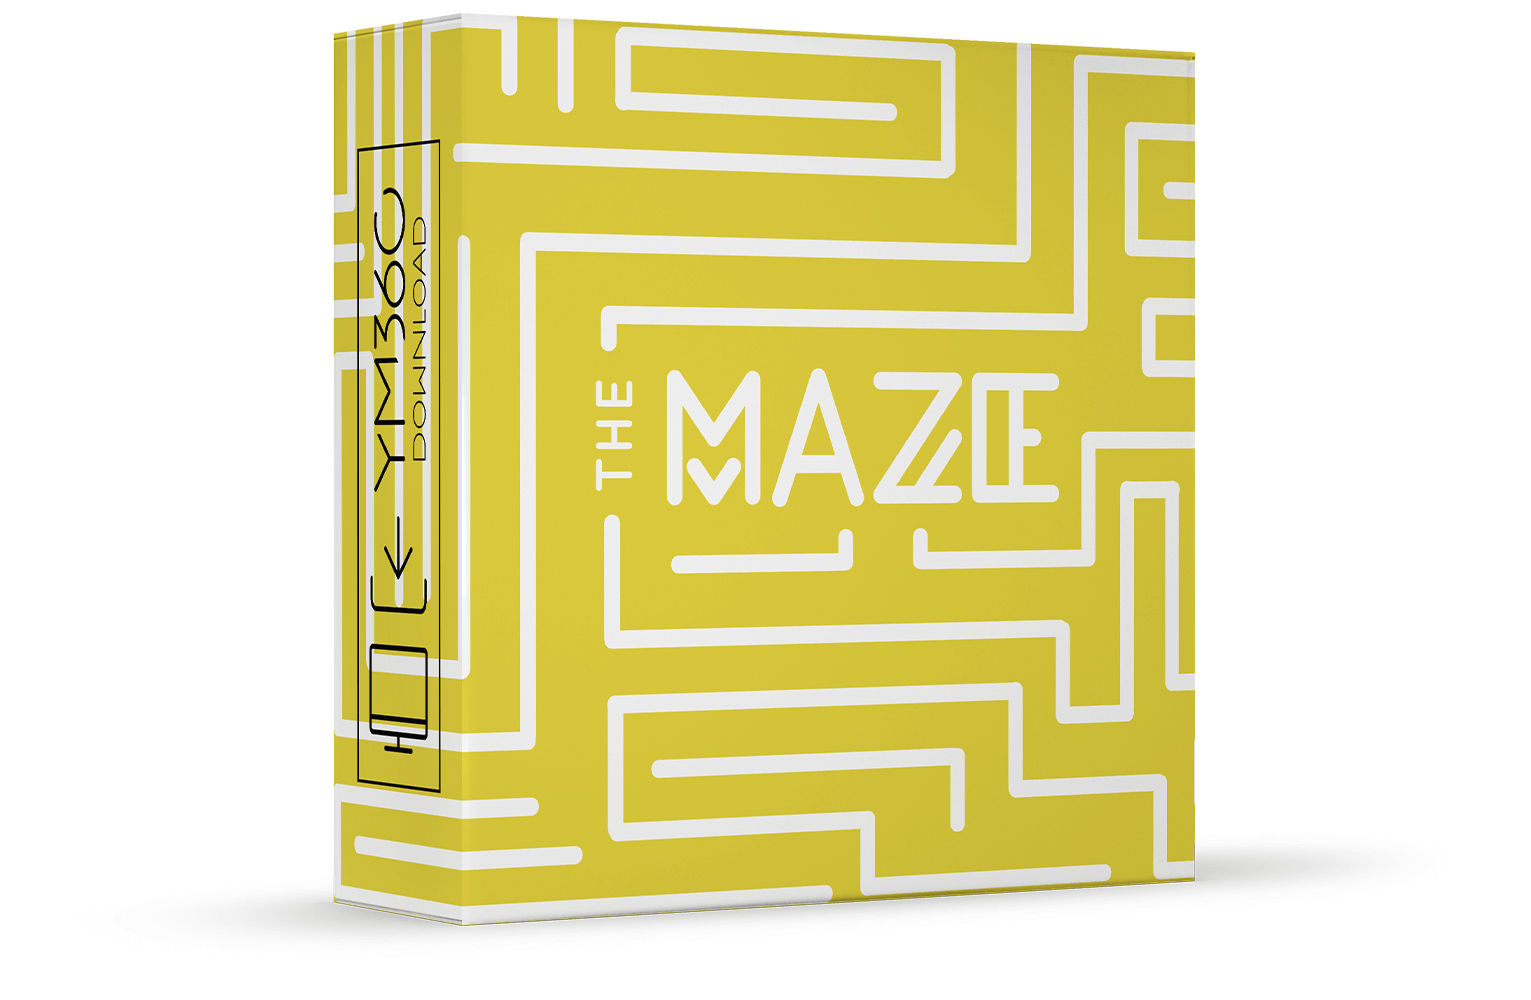 The Maze: Navigating the Christian Life